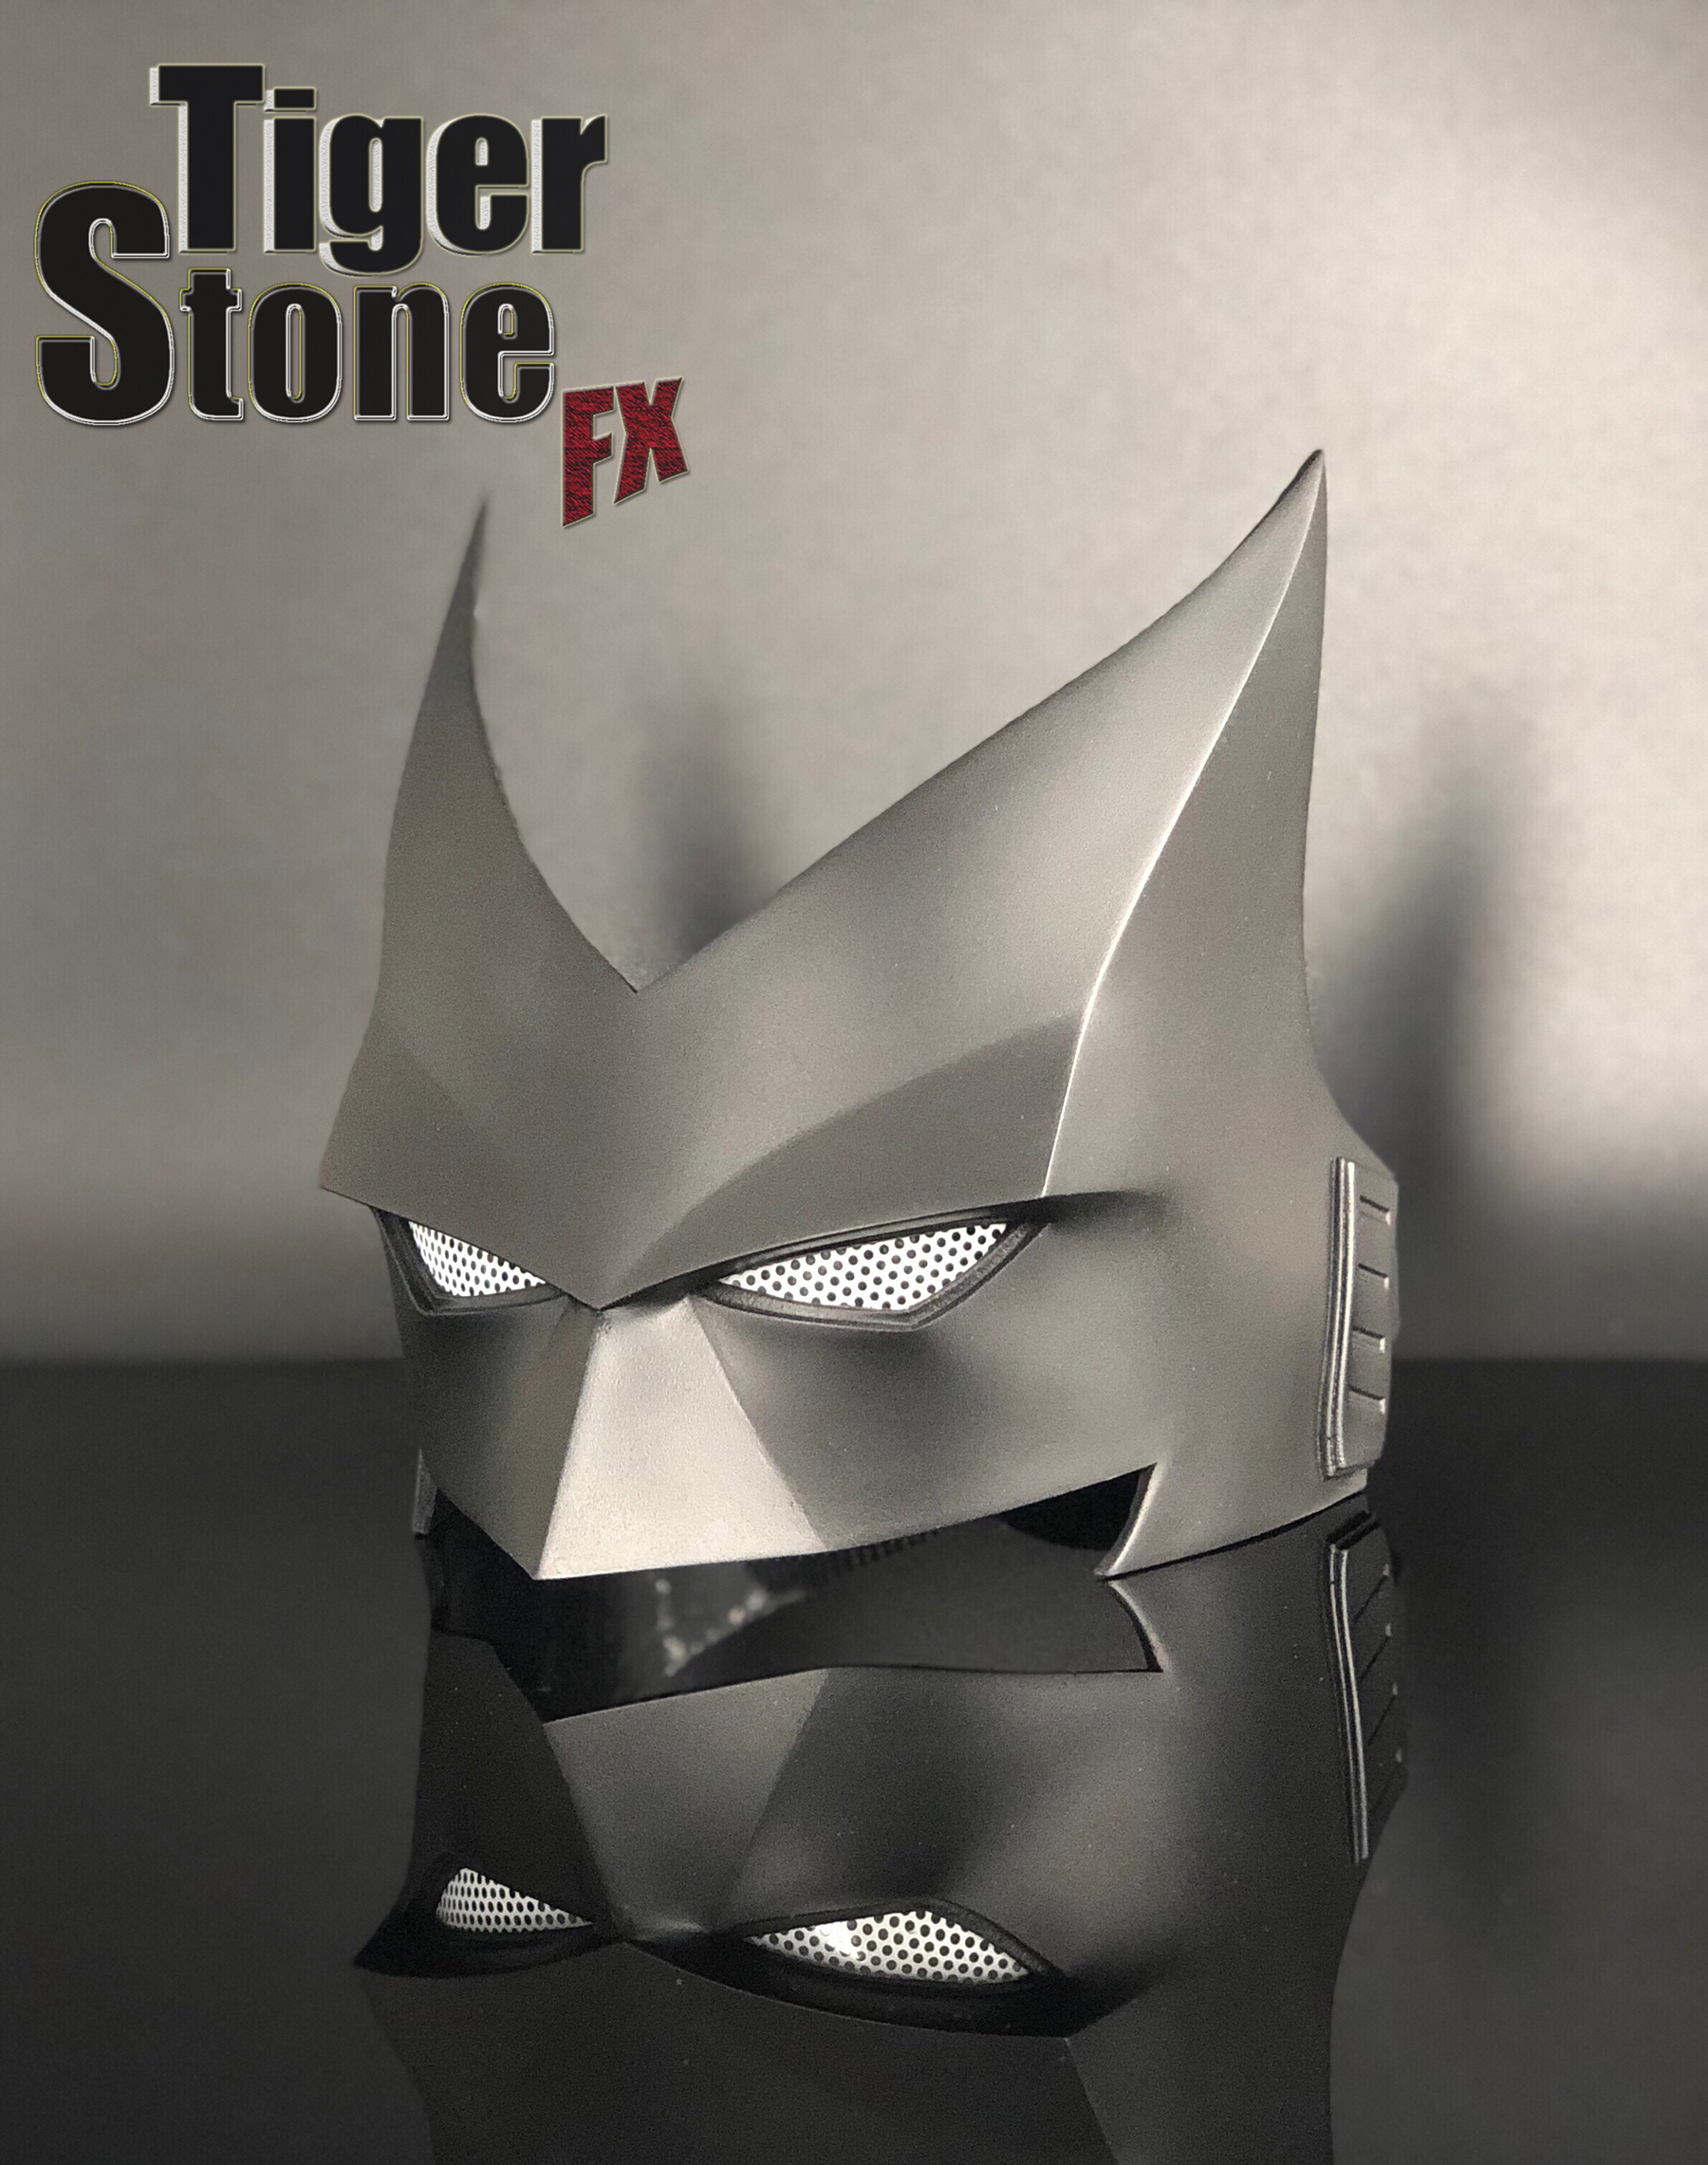 Batwoman mask for your cosplay costume -- by Tiger Stone FX